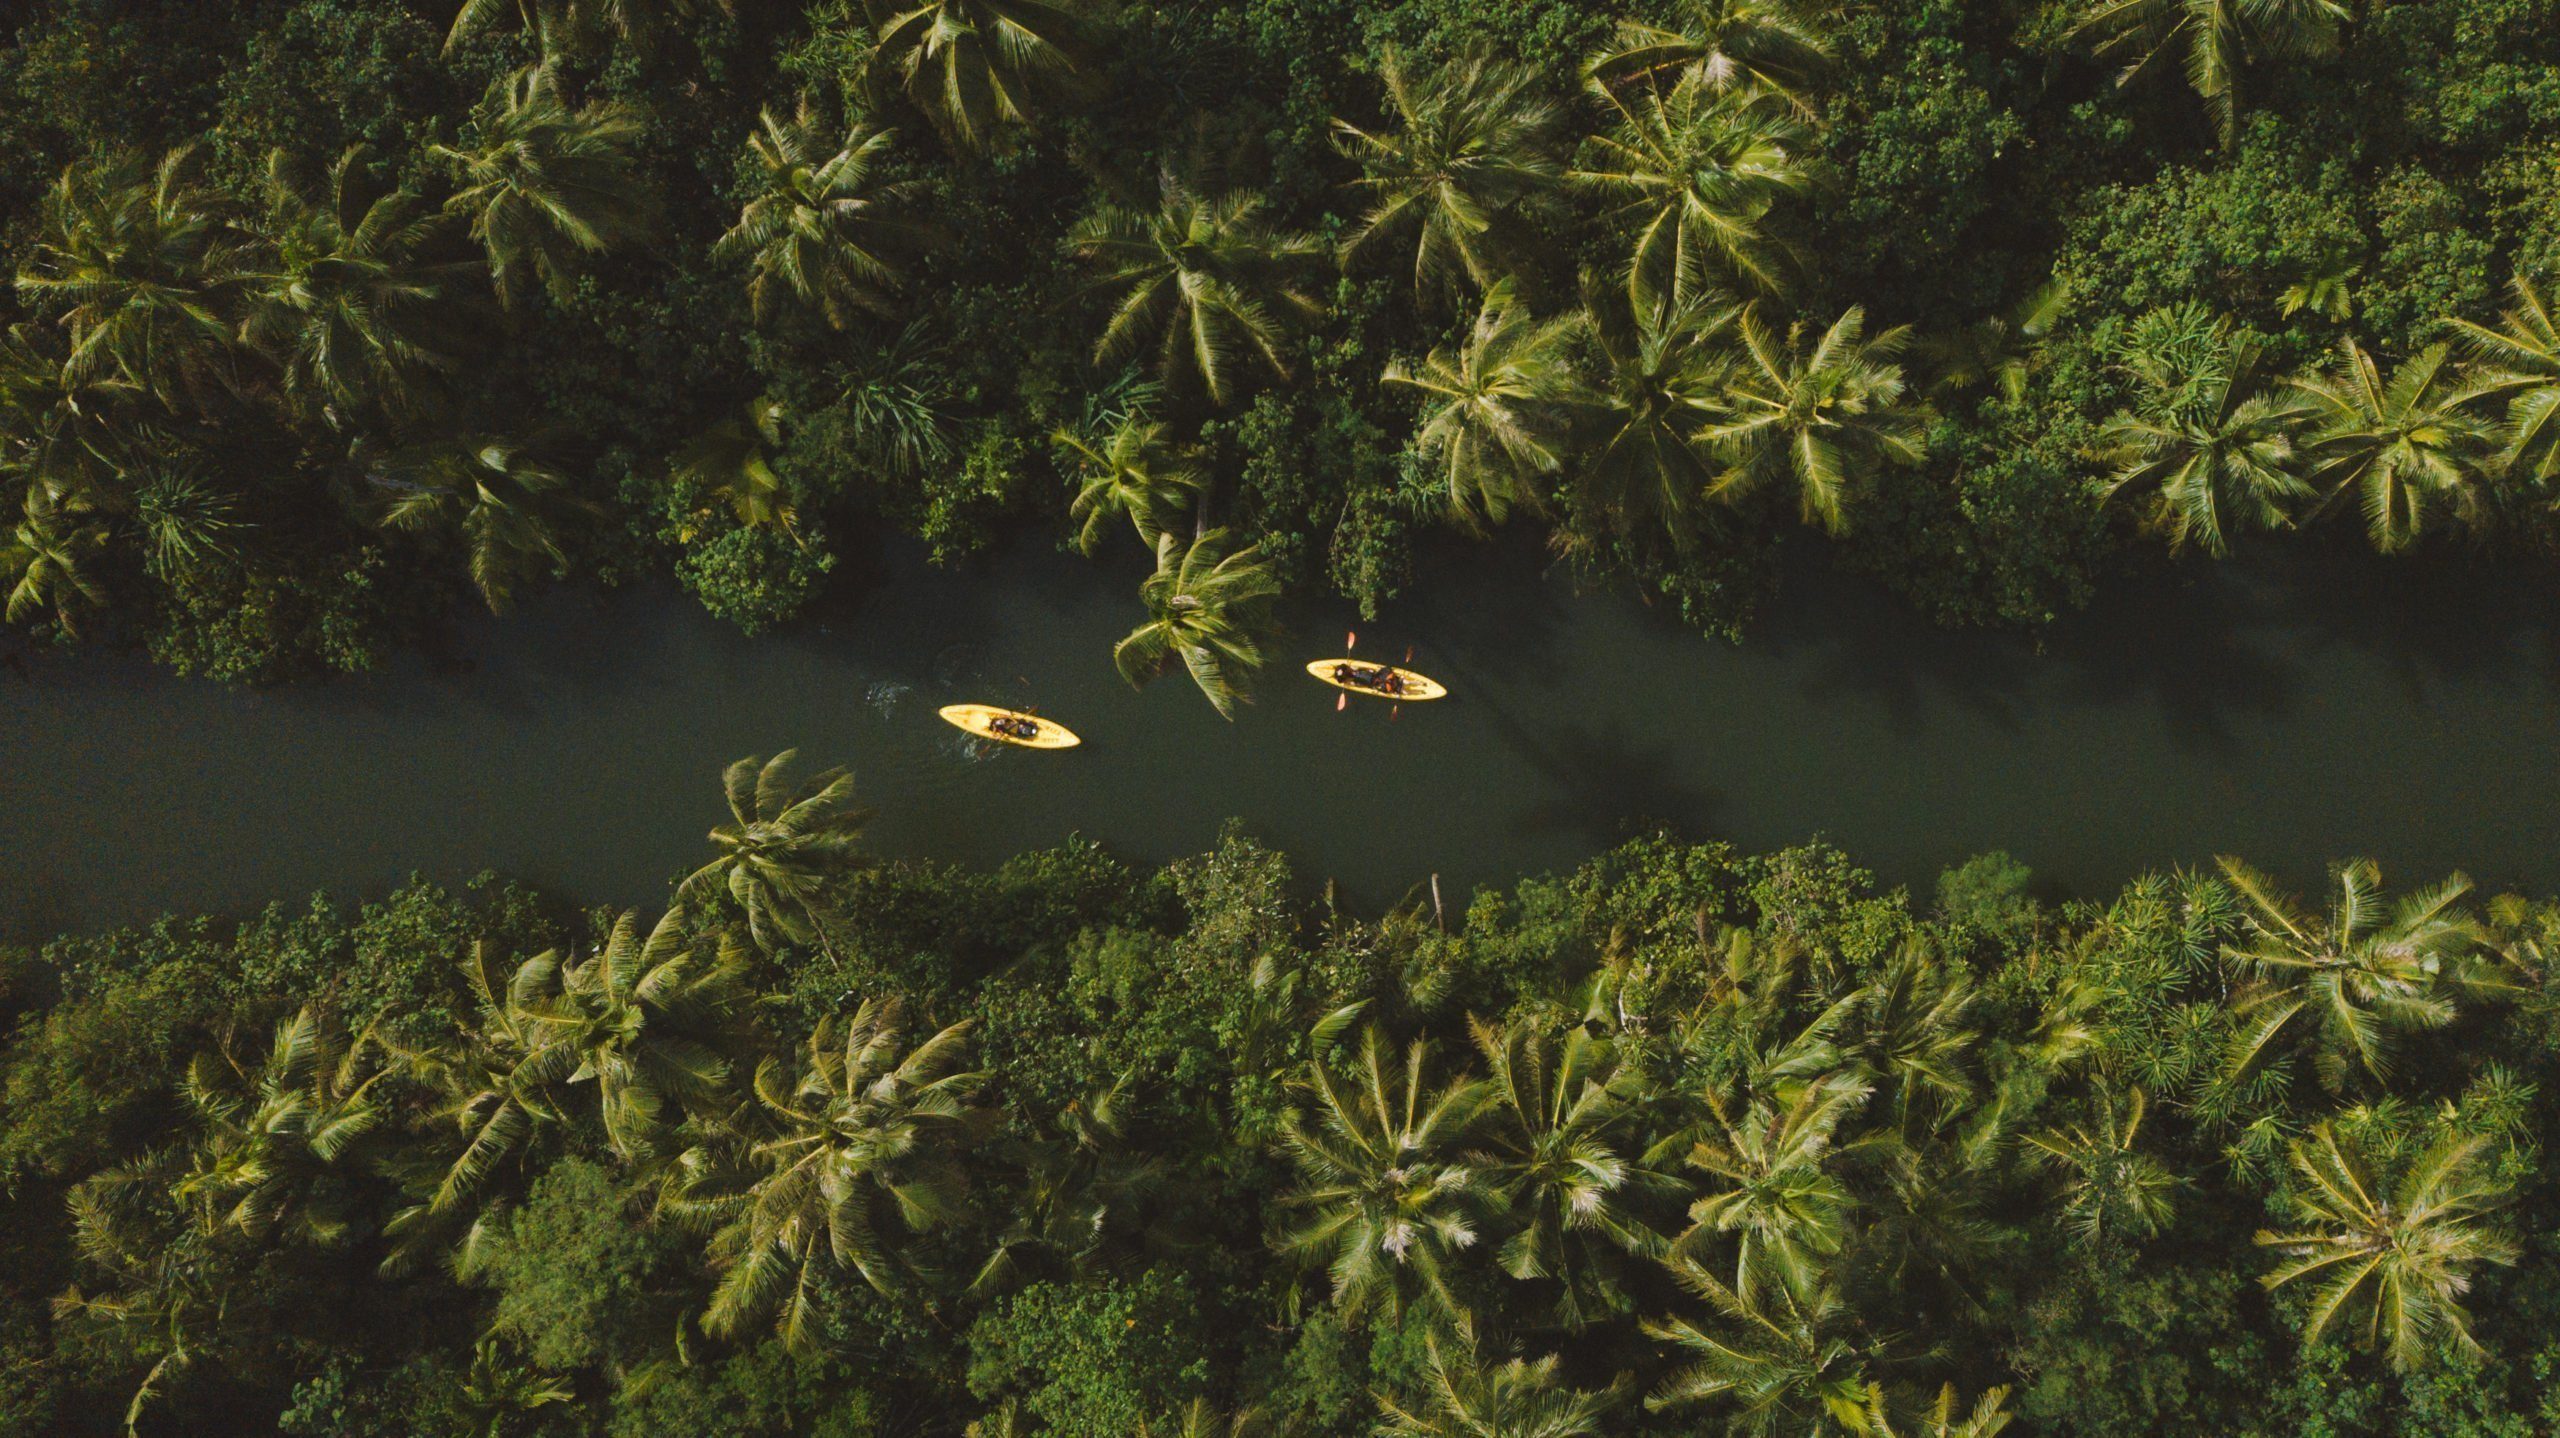 Drone photo overview of the Talofofo River with Kayakers paddling through dense jungle on Guam